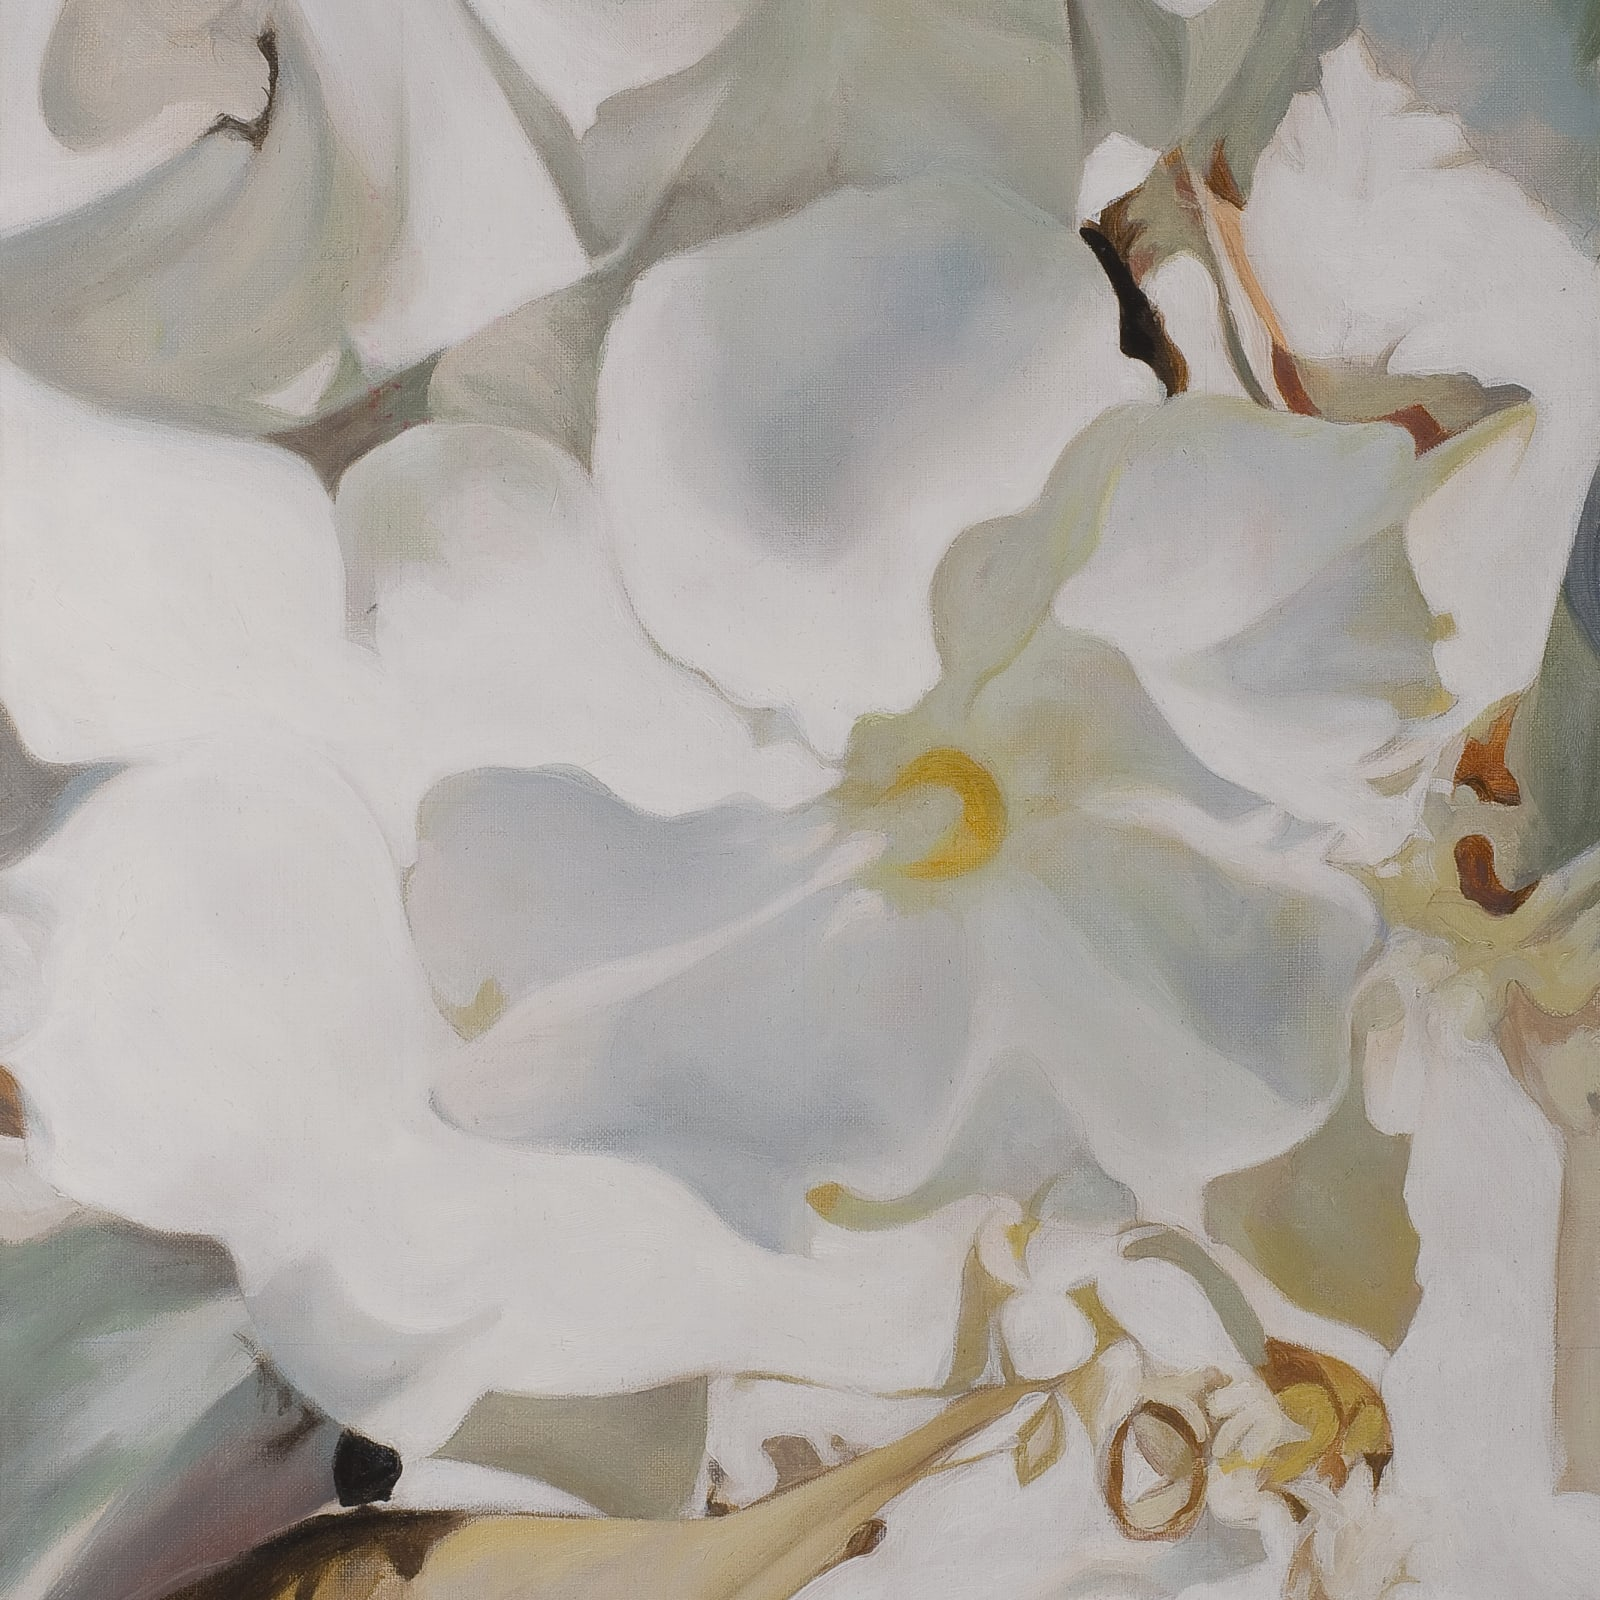 Orsina Sforza  Oleander, 2006  oil on canvas  40 x 30 cm